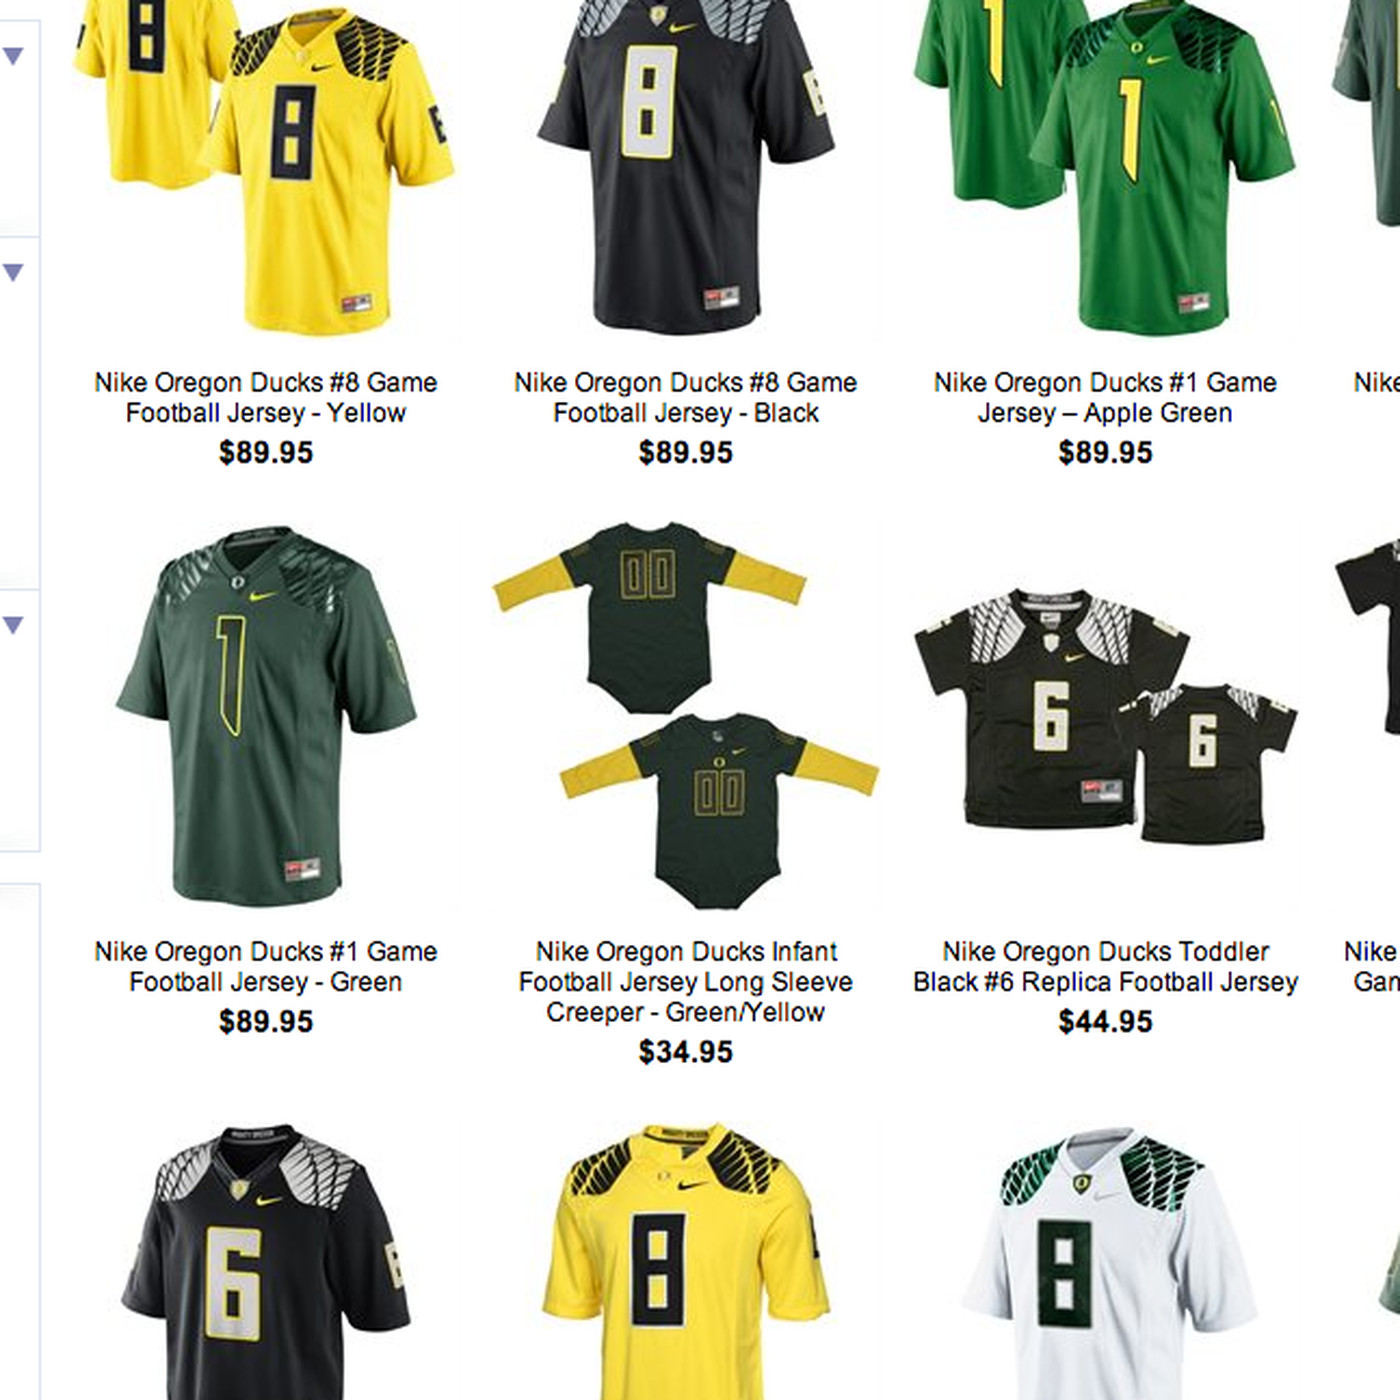 f6cc4bc4c2f5 NCAA president faces fact that colleges sell jerseys with real player  numbers - SBNation.com